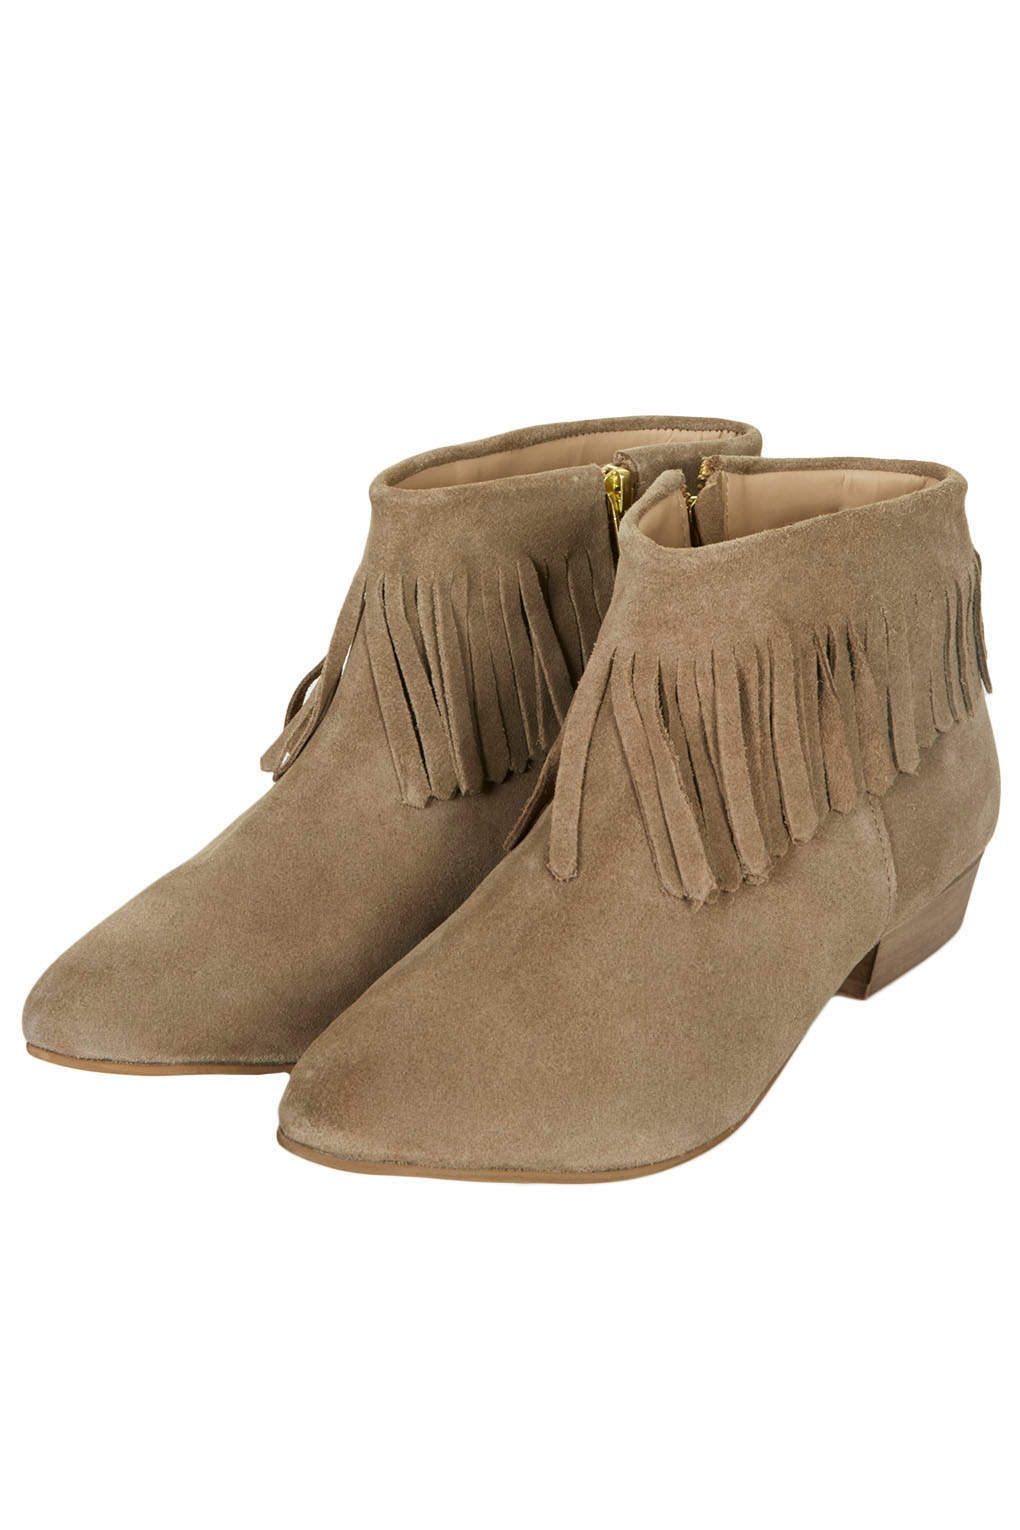 topshop blinked fringed ankle boots in brown taupe lyst